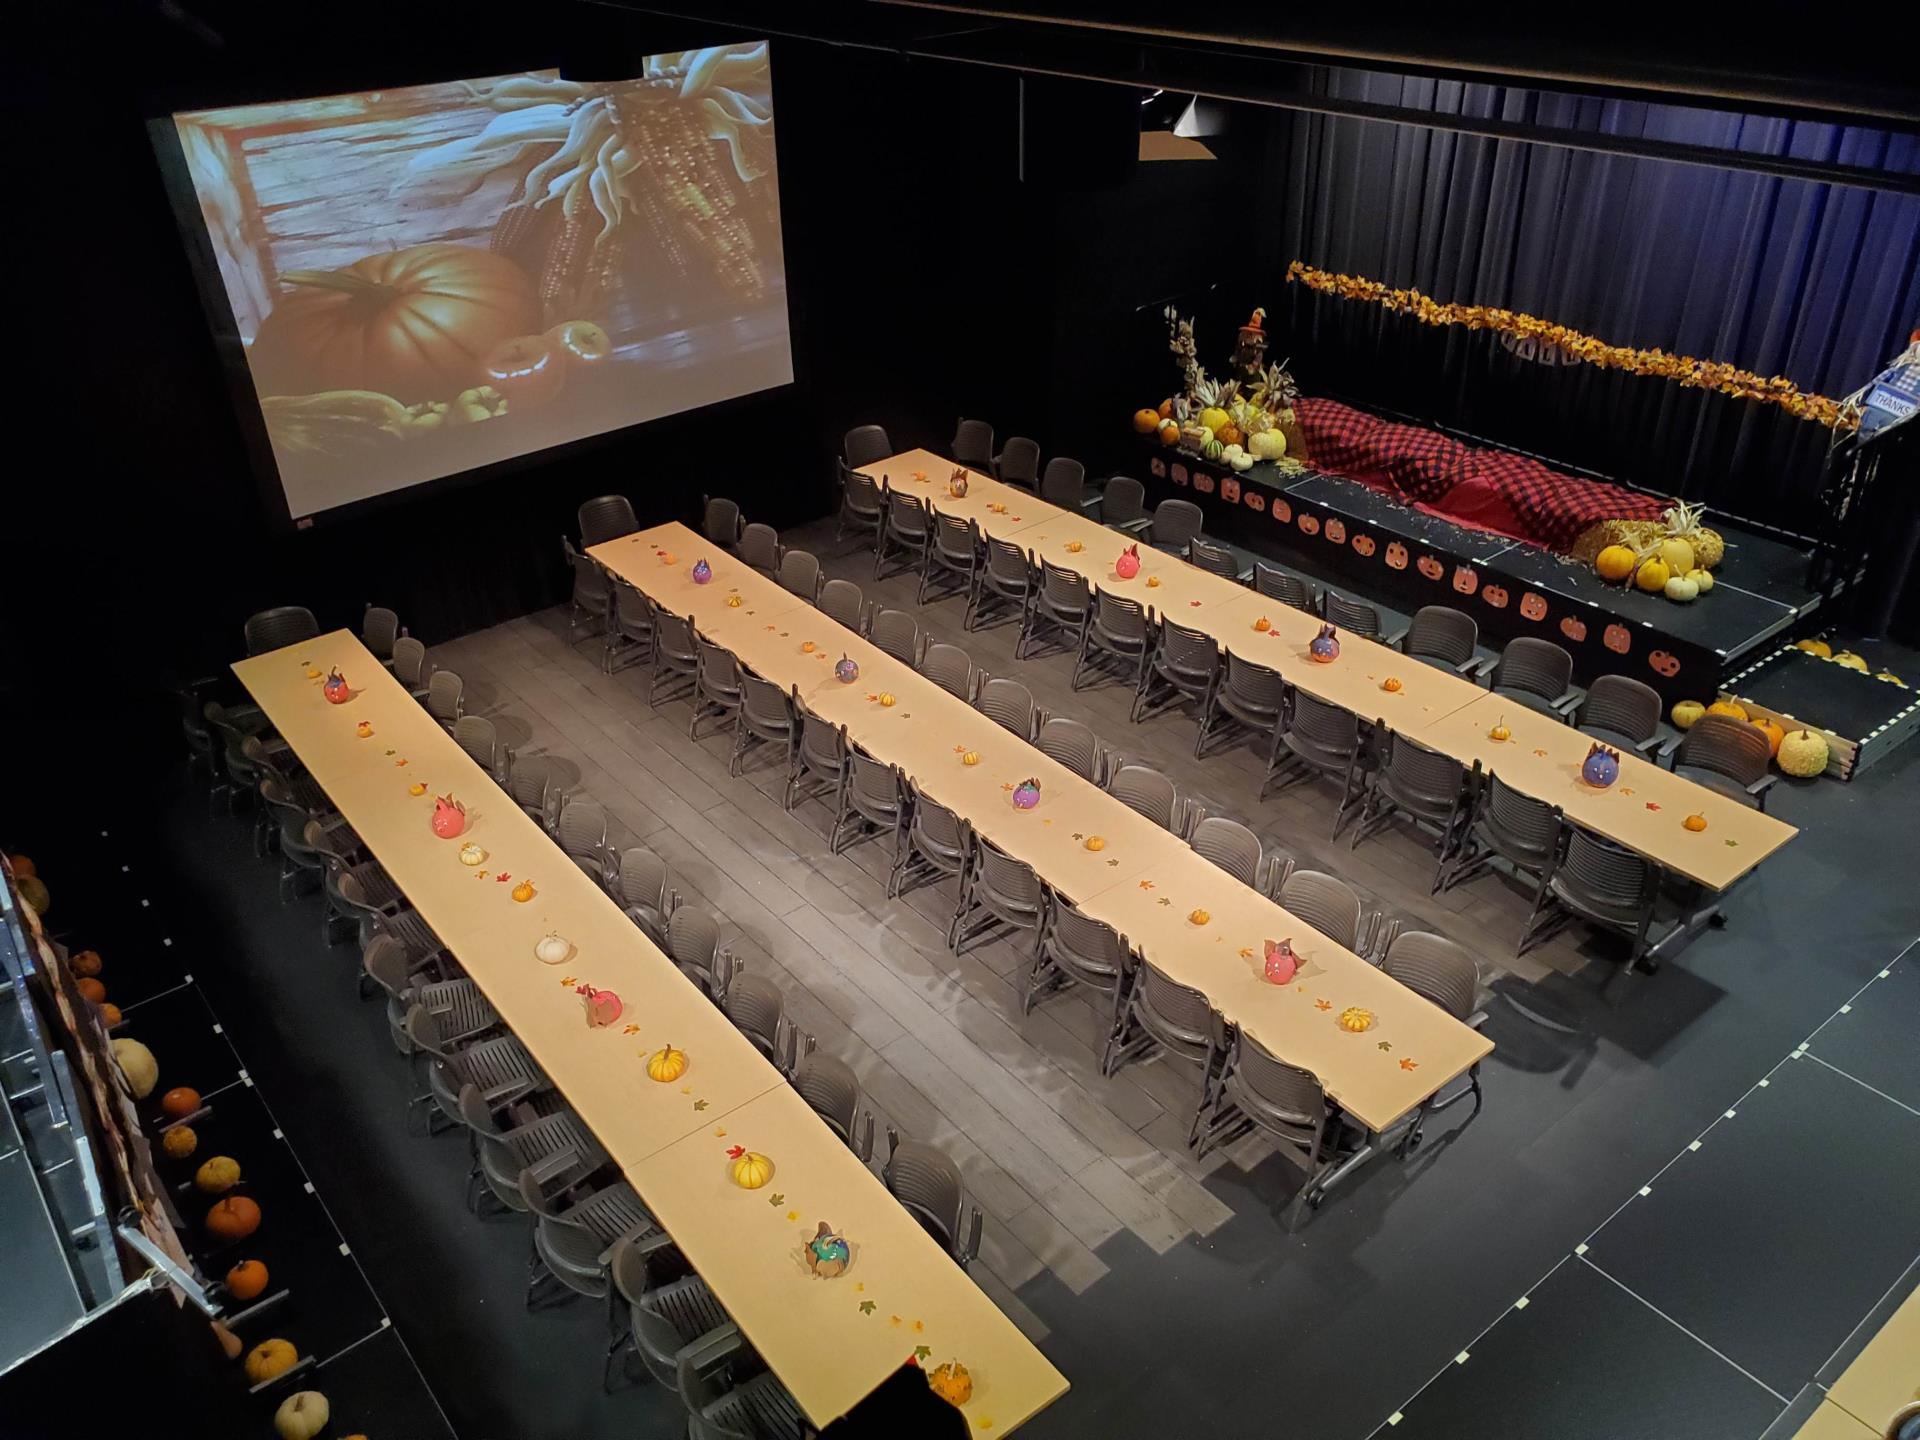 Harvest Festival Banquet setup in the theater